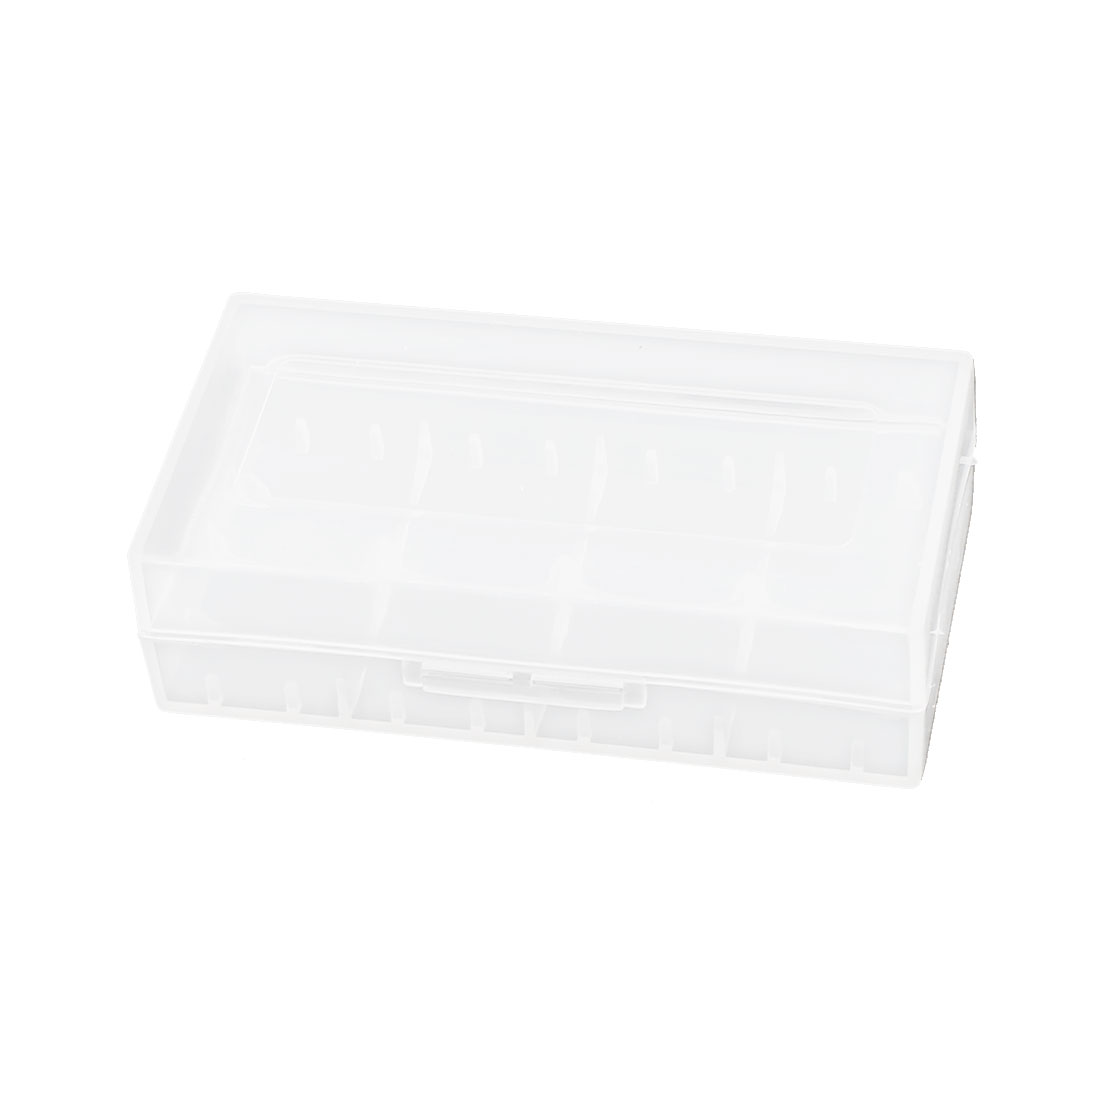 Clear White Rectangle Storage Box Case Container for 18650 Battery